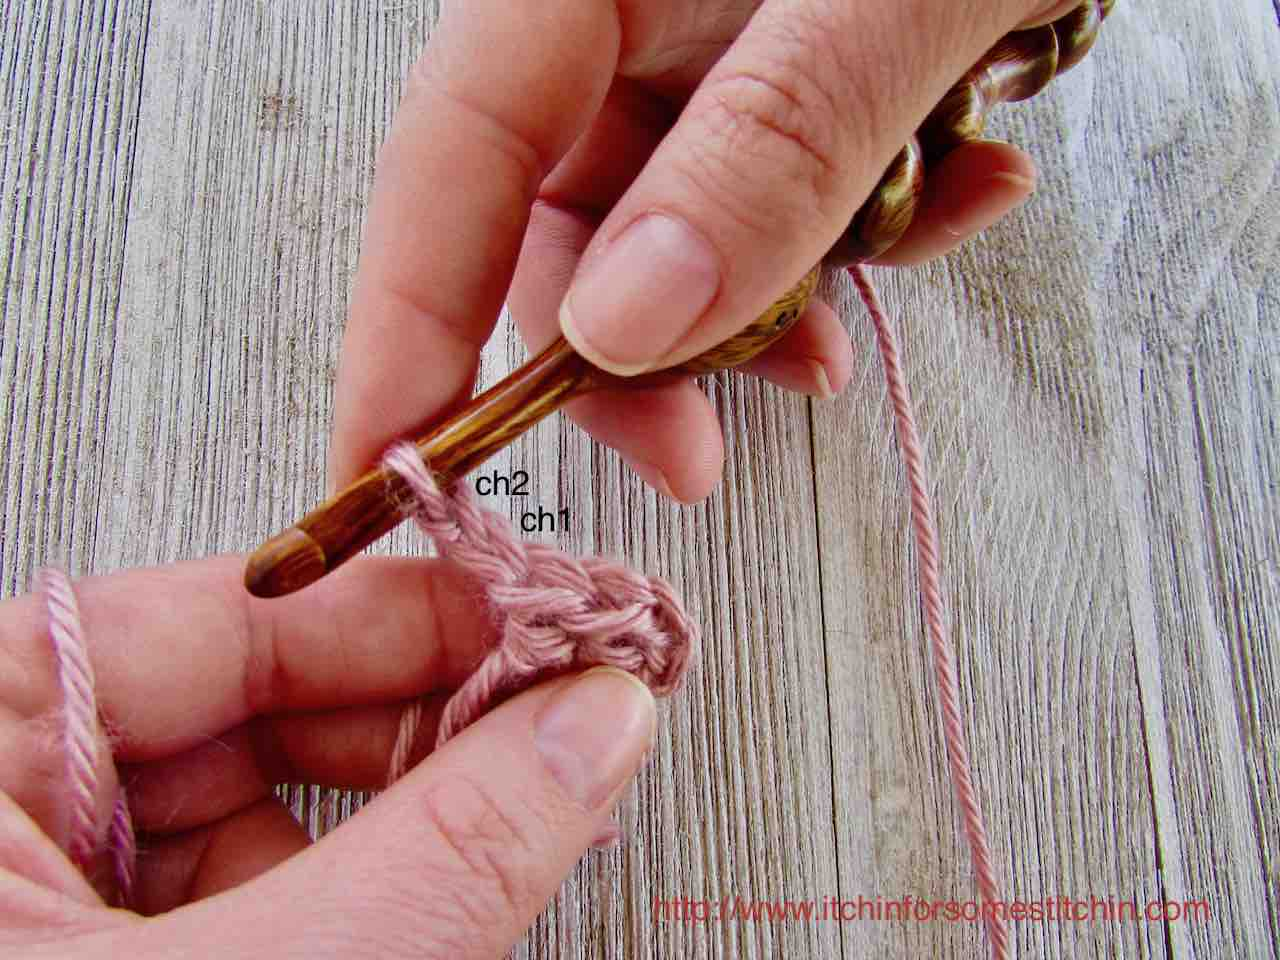 Granny Squares_1st ch2 space by http://www.itchinforsomestitchin.com